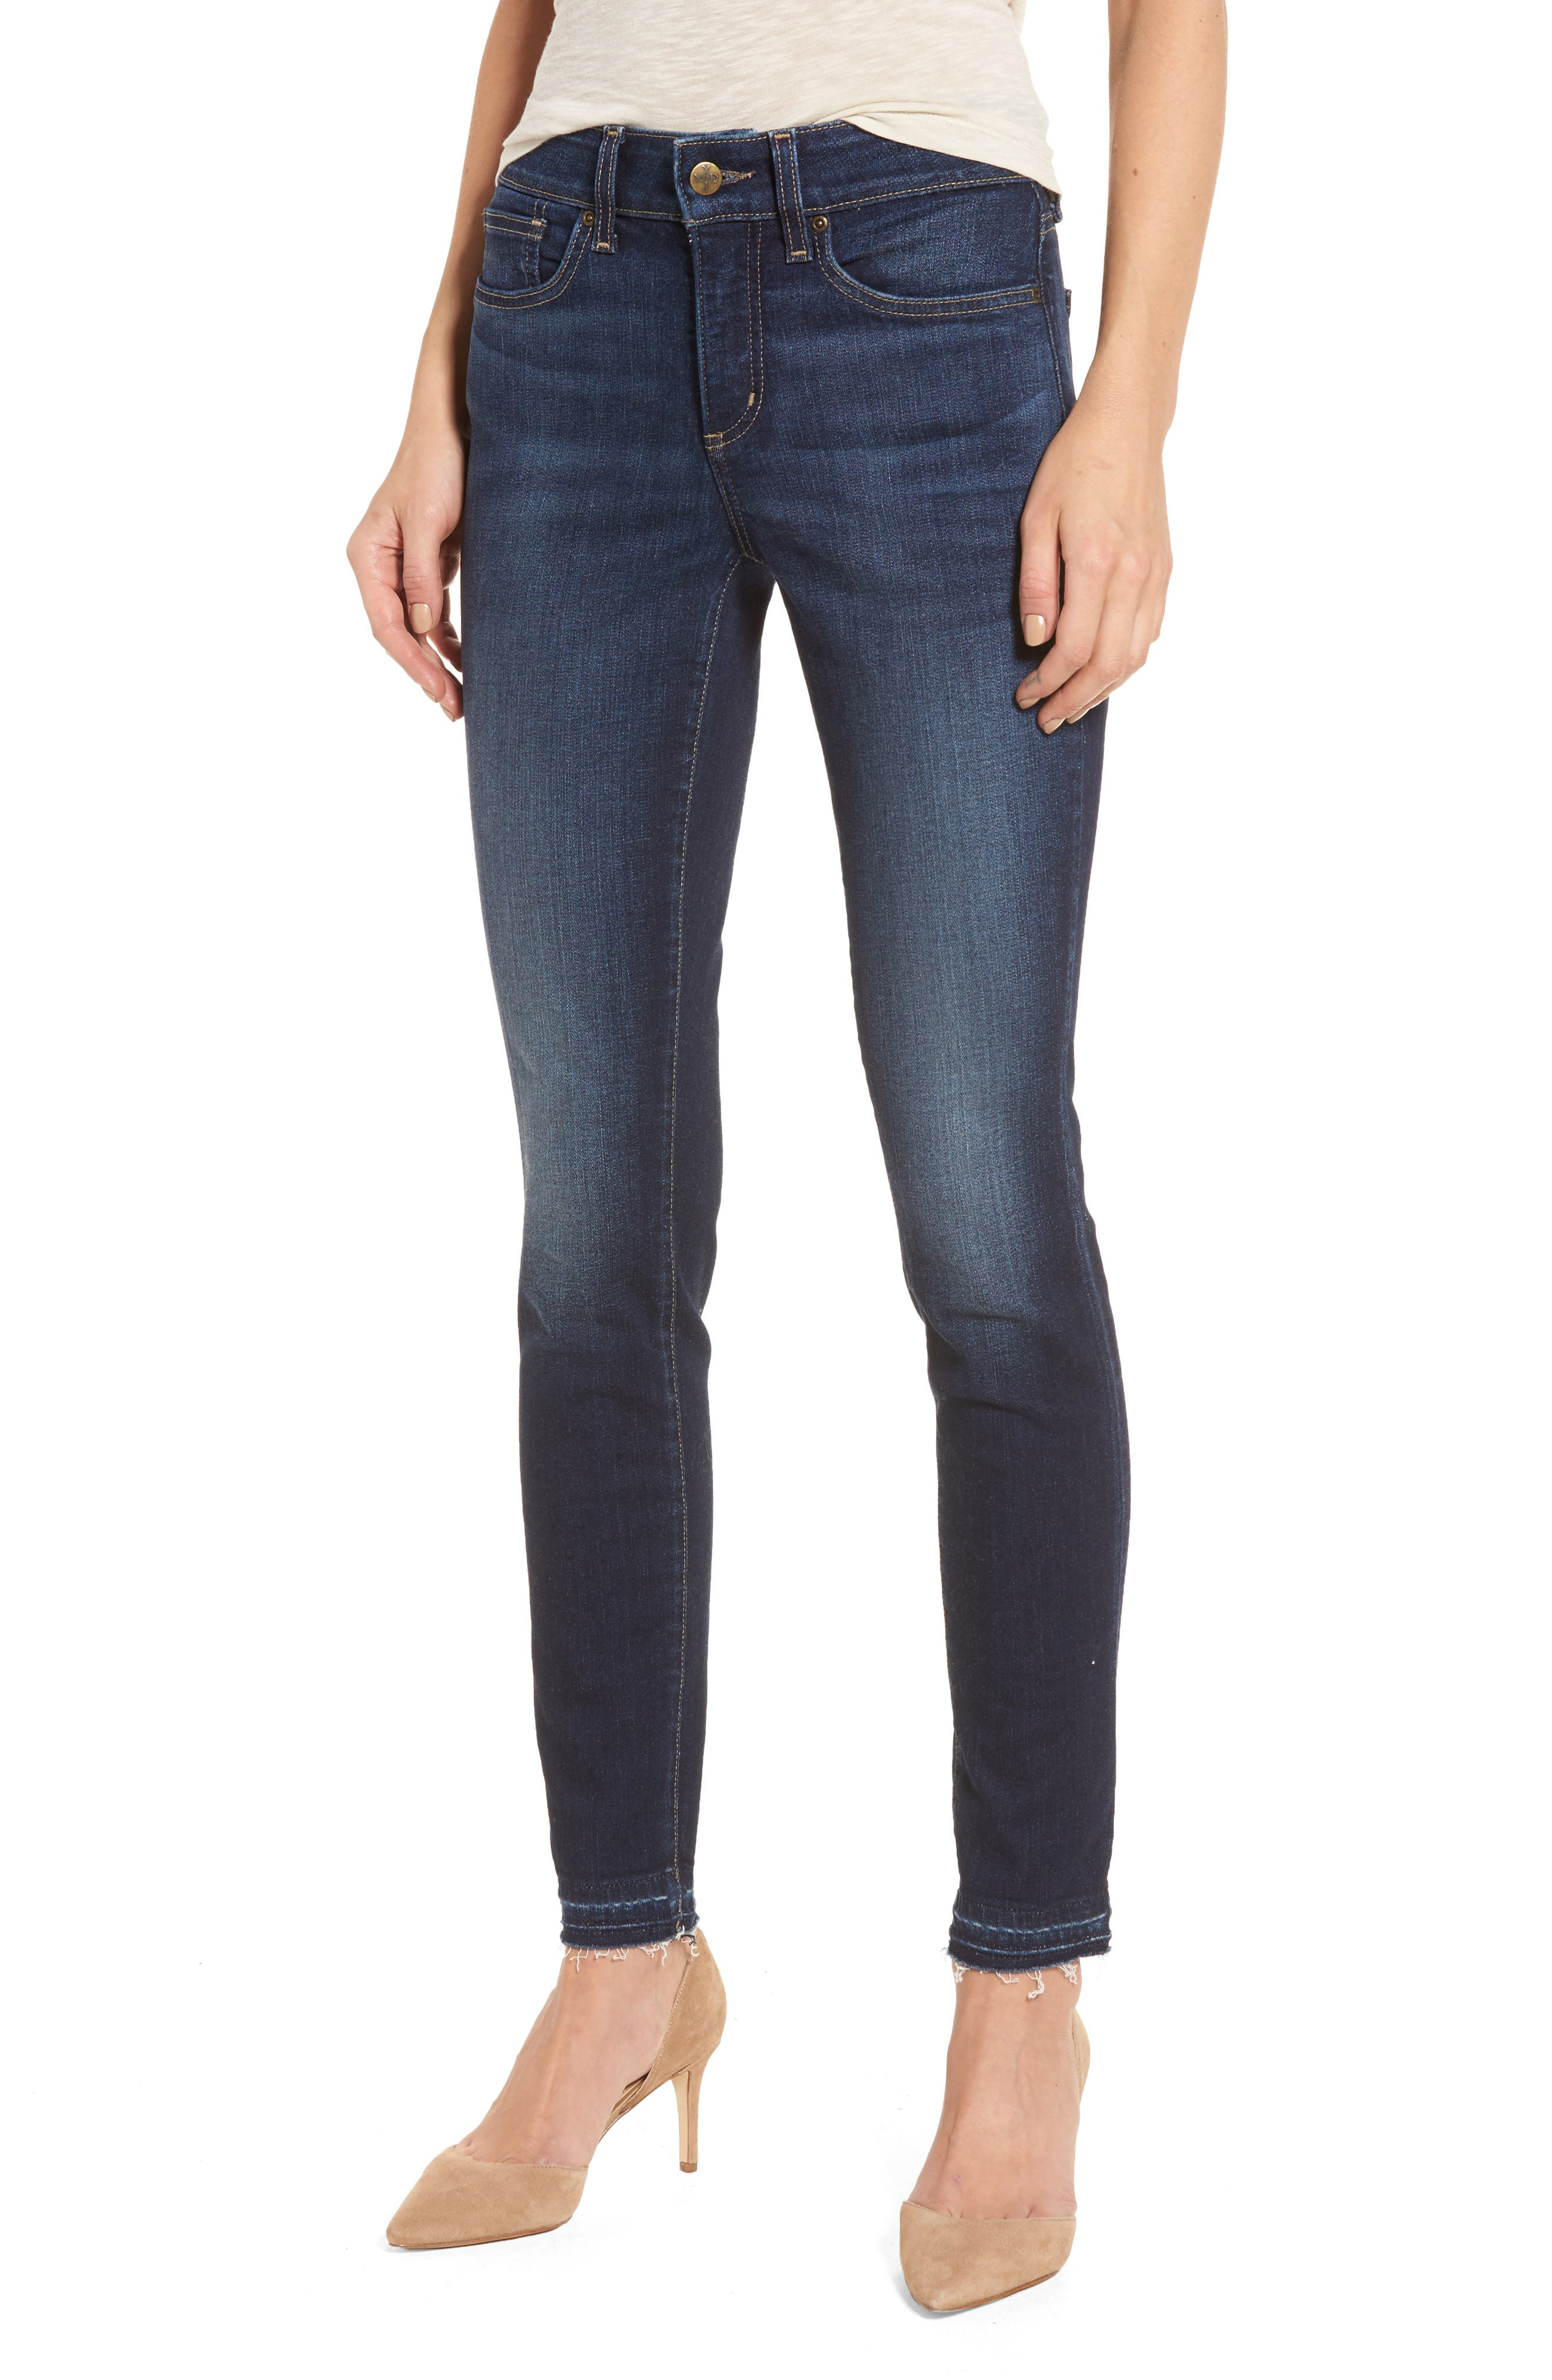 Alina Release Hem Stretch Ankle Jeans,                             Main thumbnail 1, color,                             421